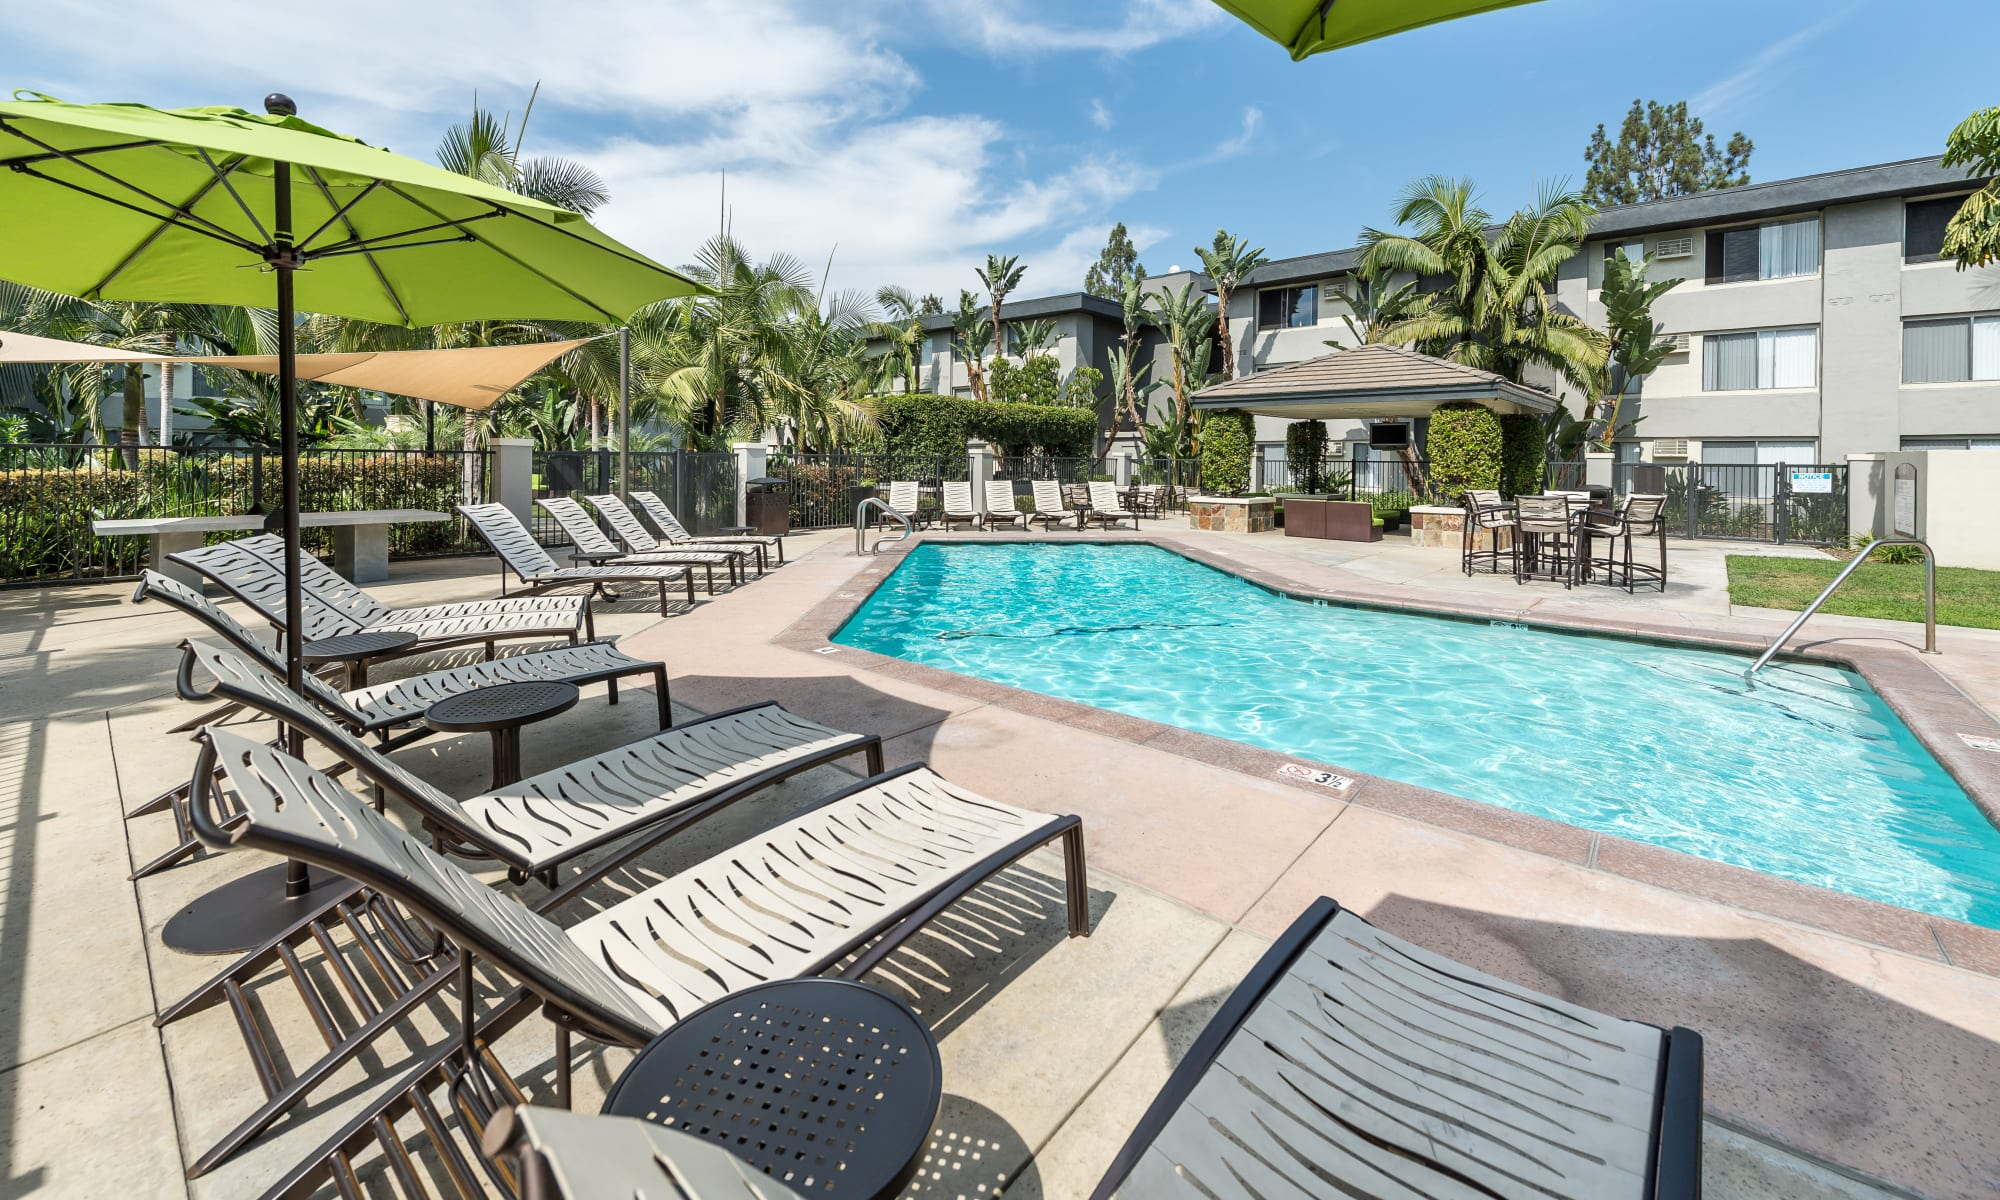 Pet friendly at UCE Apartment Homes in Fullerton, California